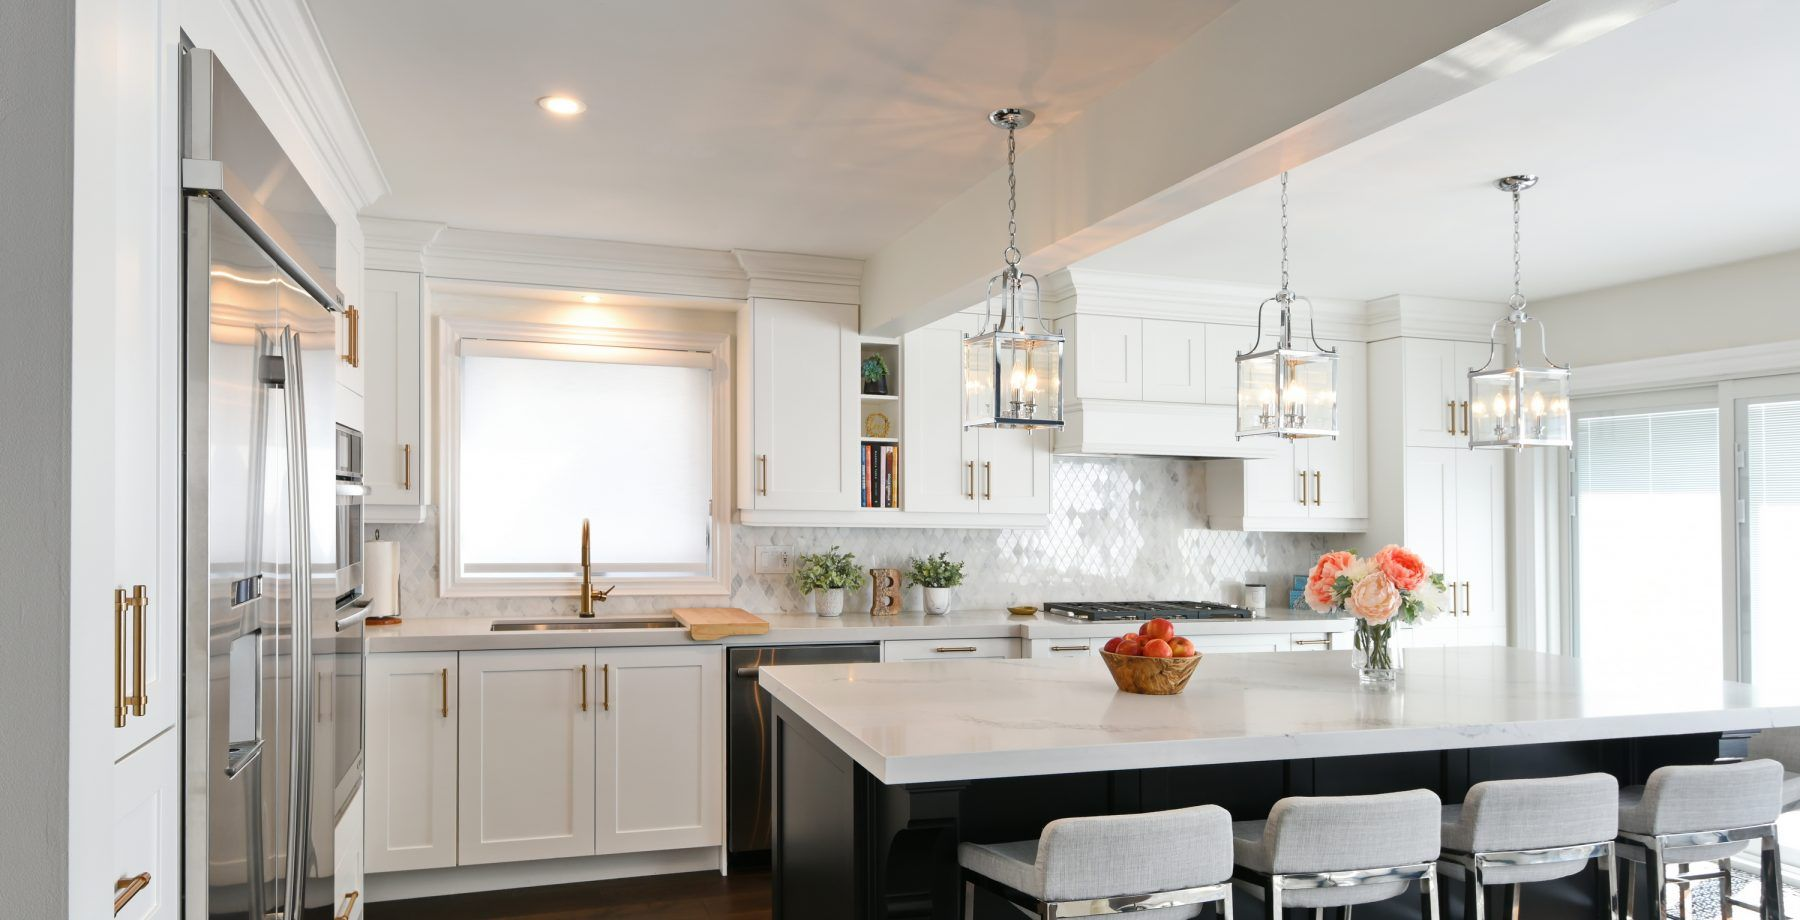 Home Selba Kitchens Baths Is A Canadian Based Company Specializing In Custom Kitchen Design We Are L Custom Kitchens Design Kitchen Design Kitchen Remodel